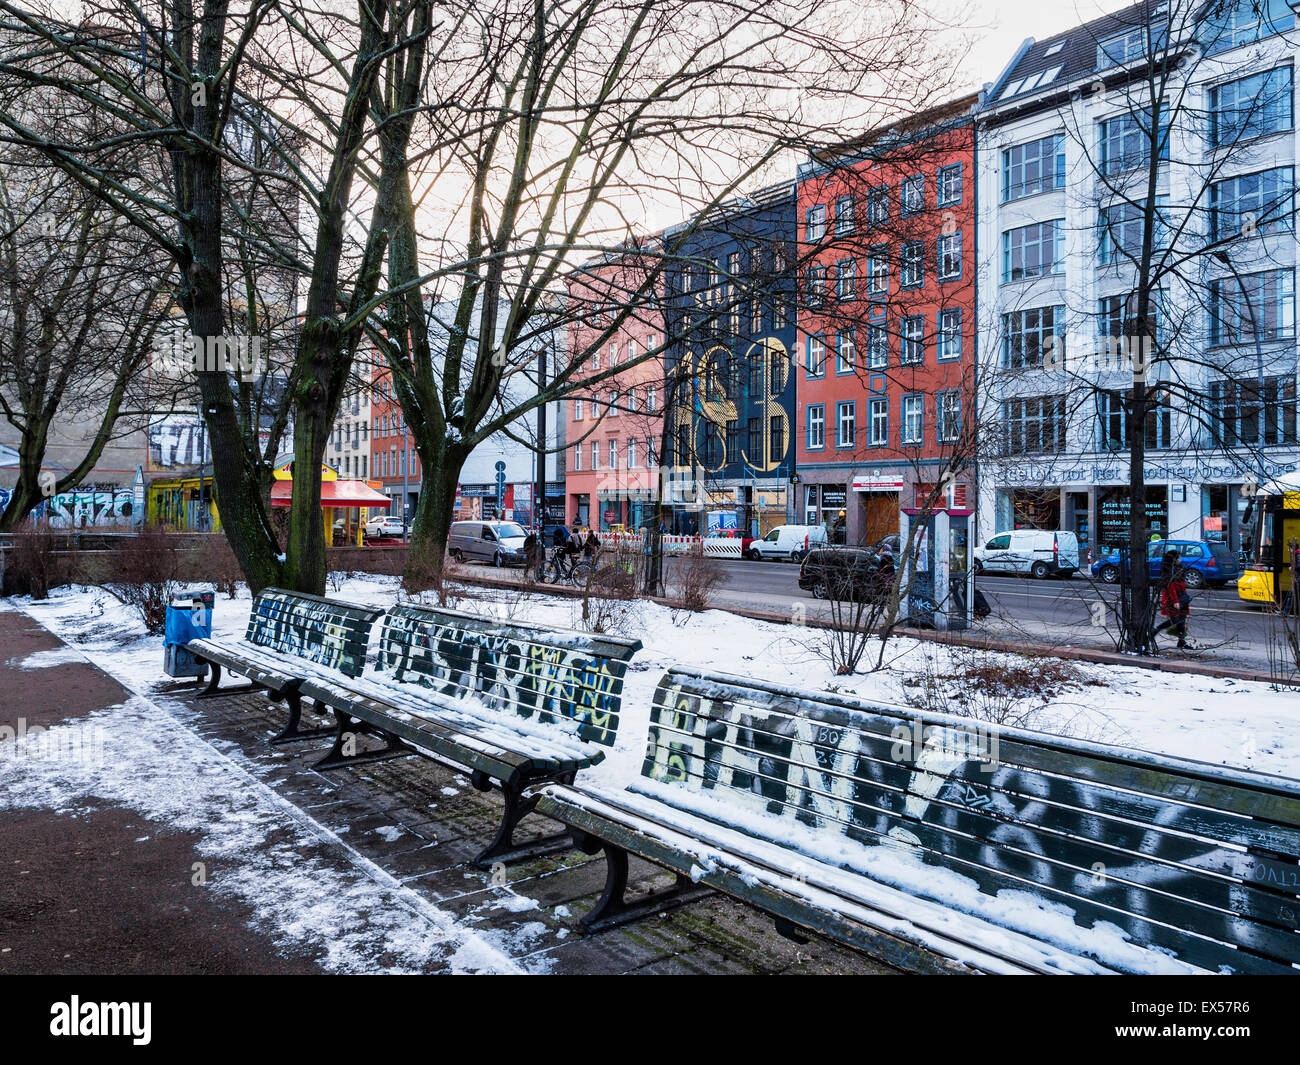 Berlin street and public park view covered with snow in Winter. Road lined with newly renovated apartment buildings - Stock Image